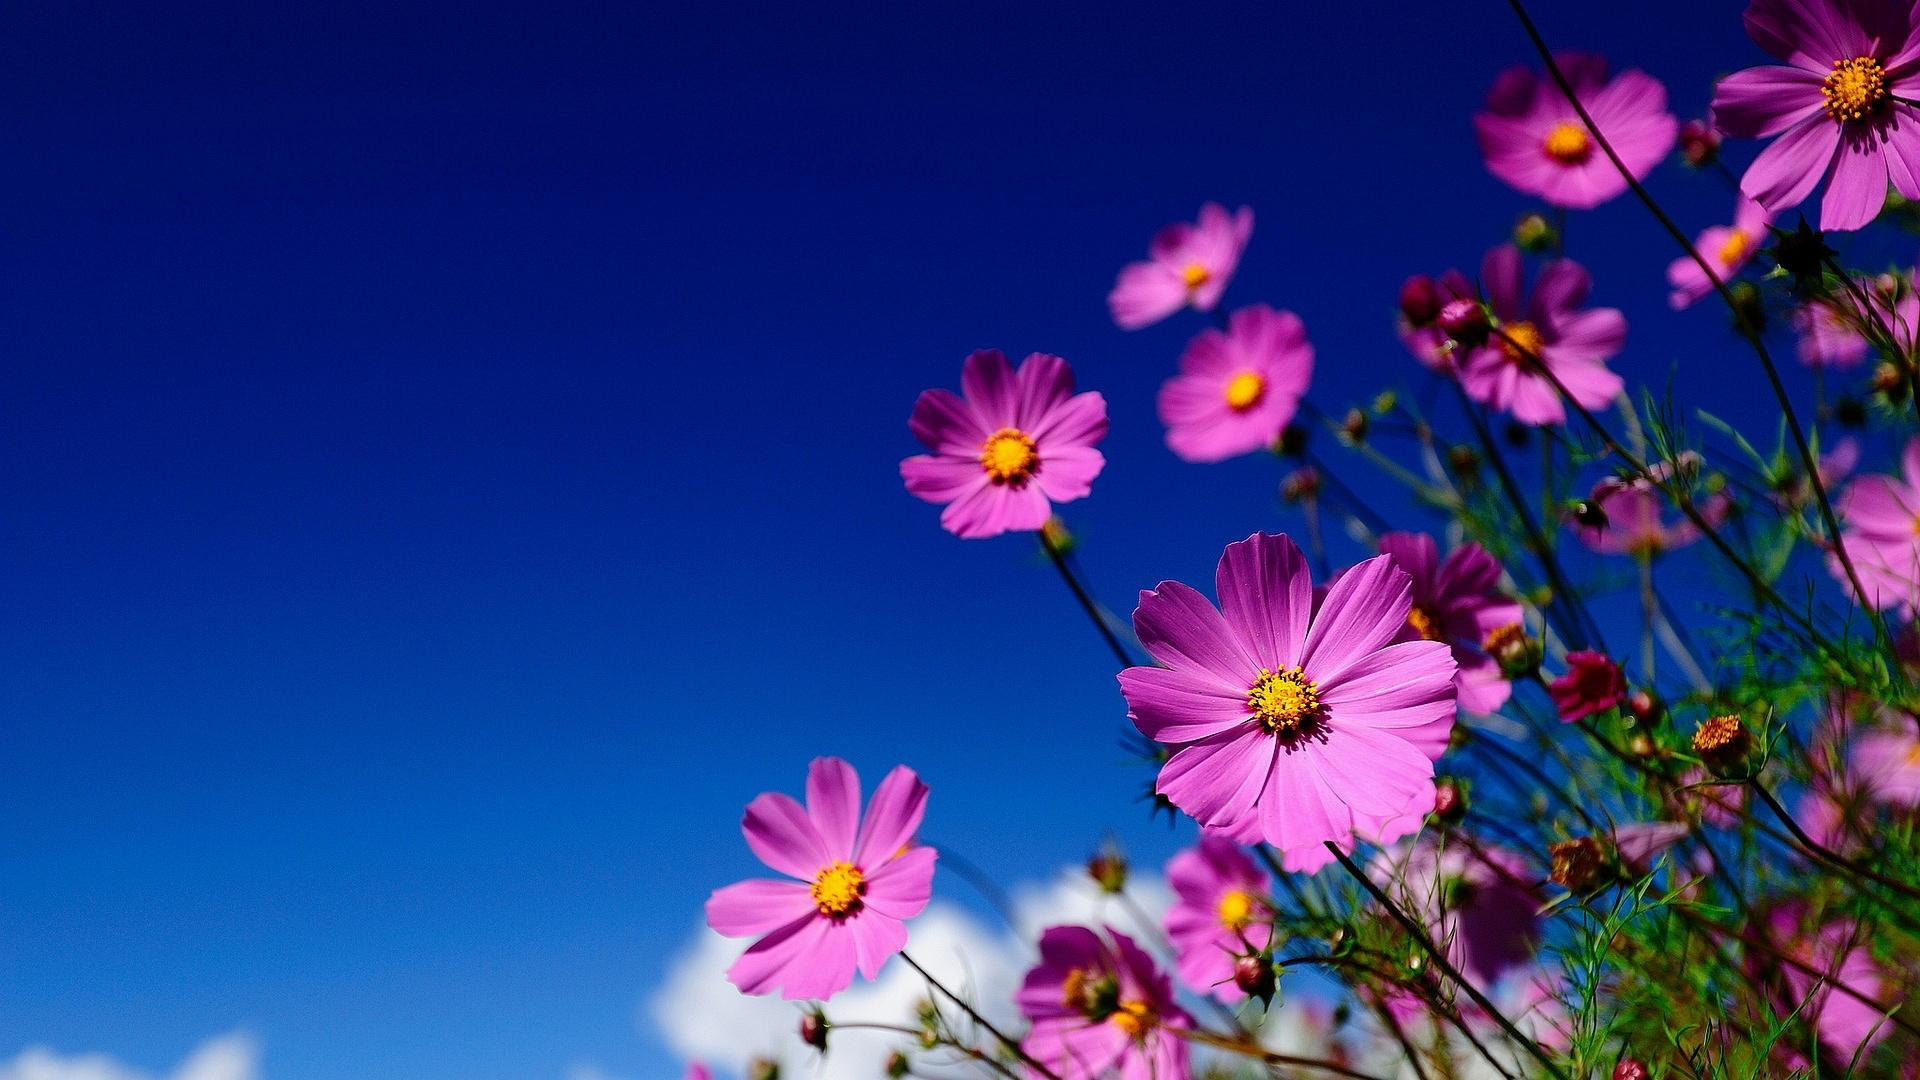 High Resolution Flowers Wallpapers 030